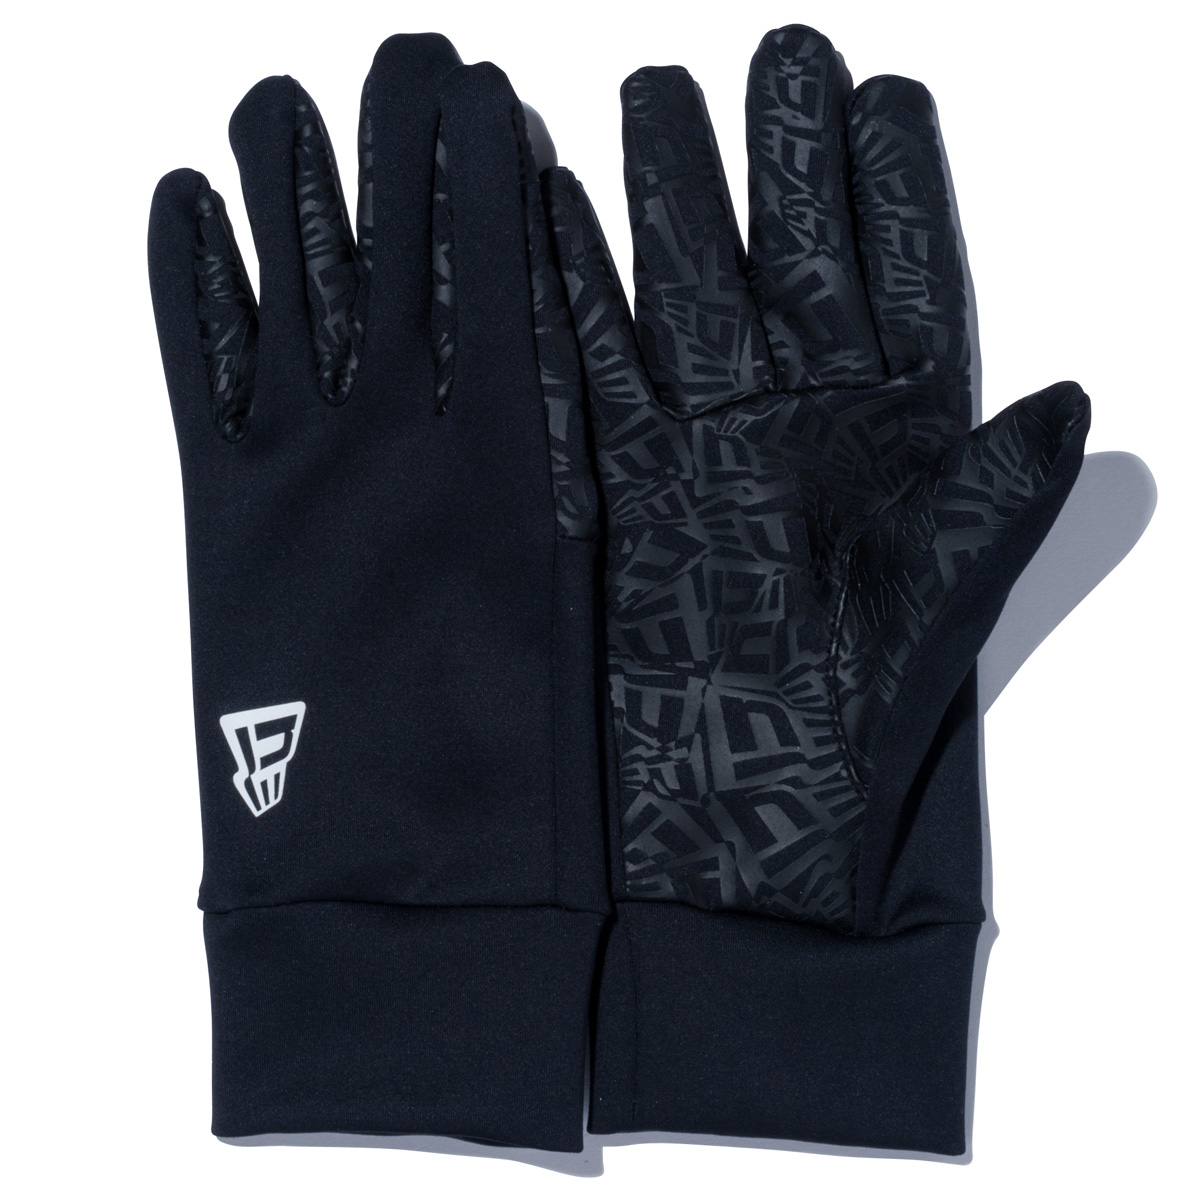 GLOVES E TOUCH グローブ両手用